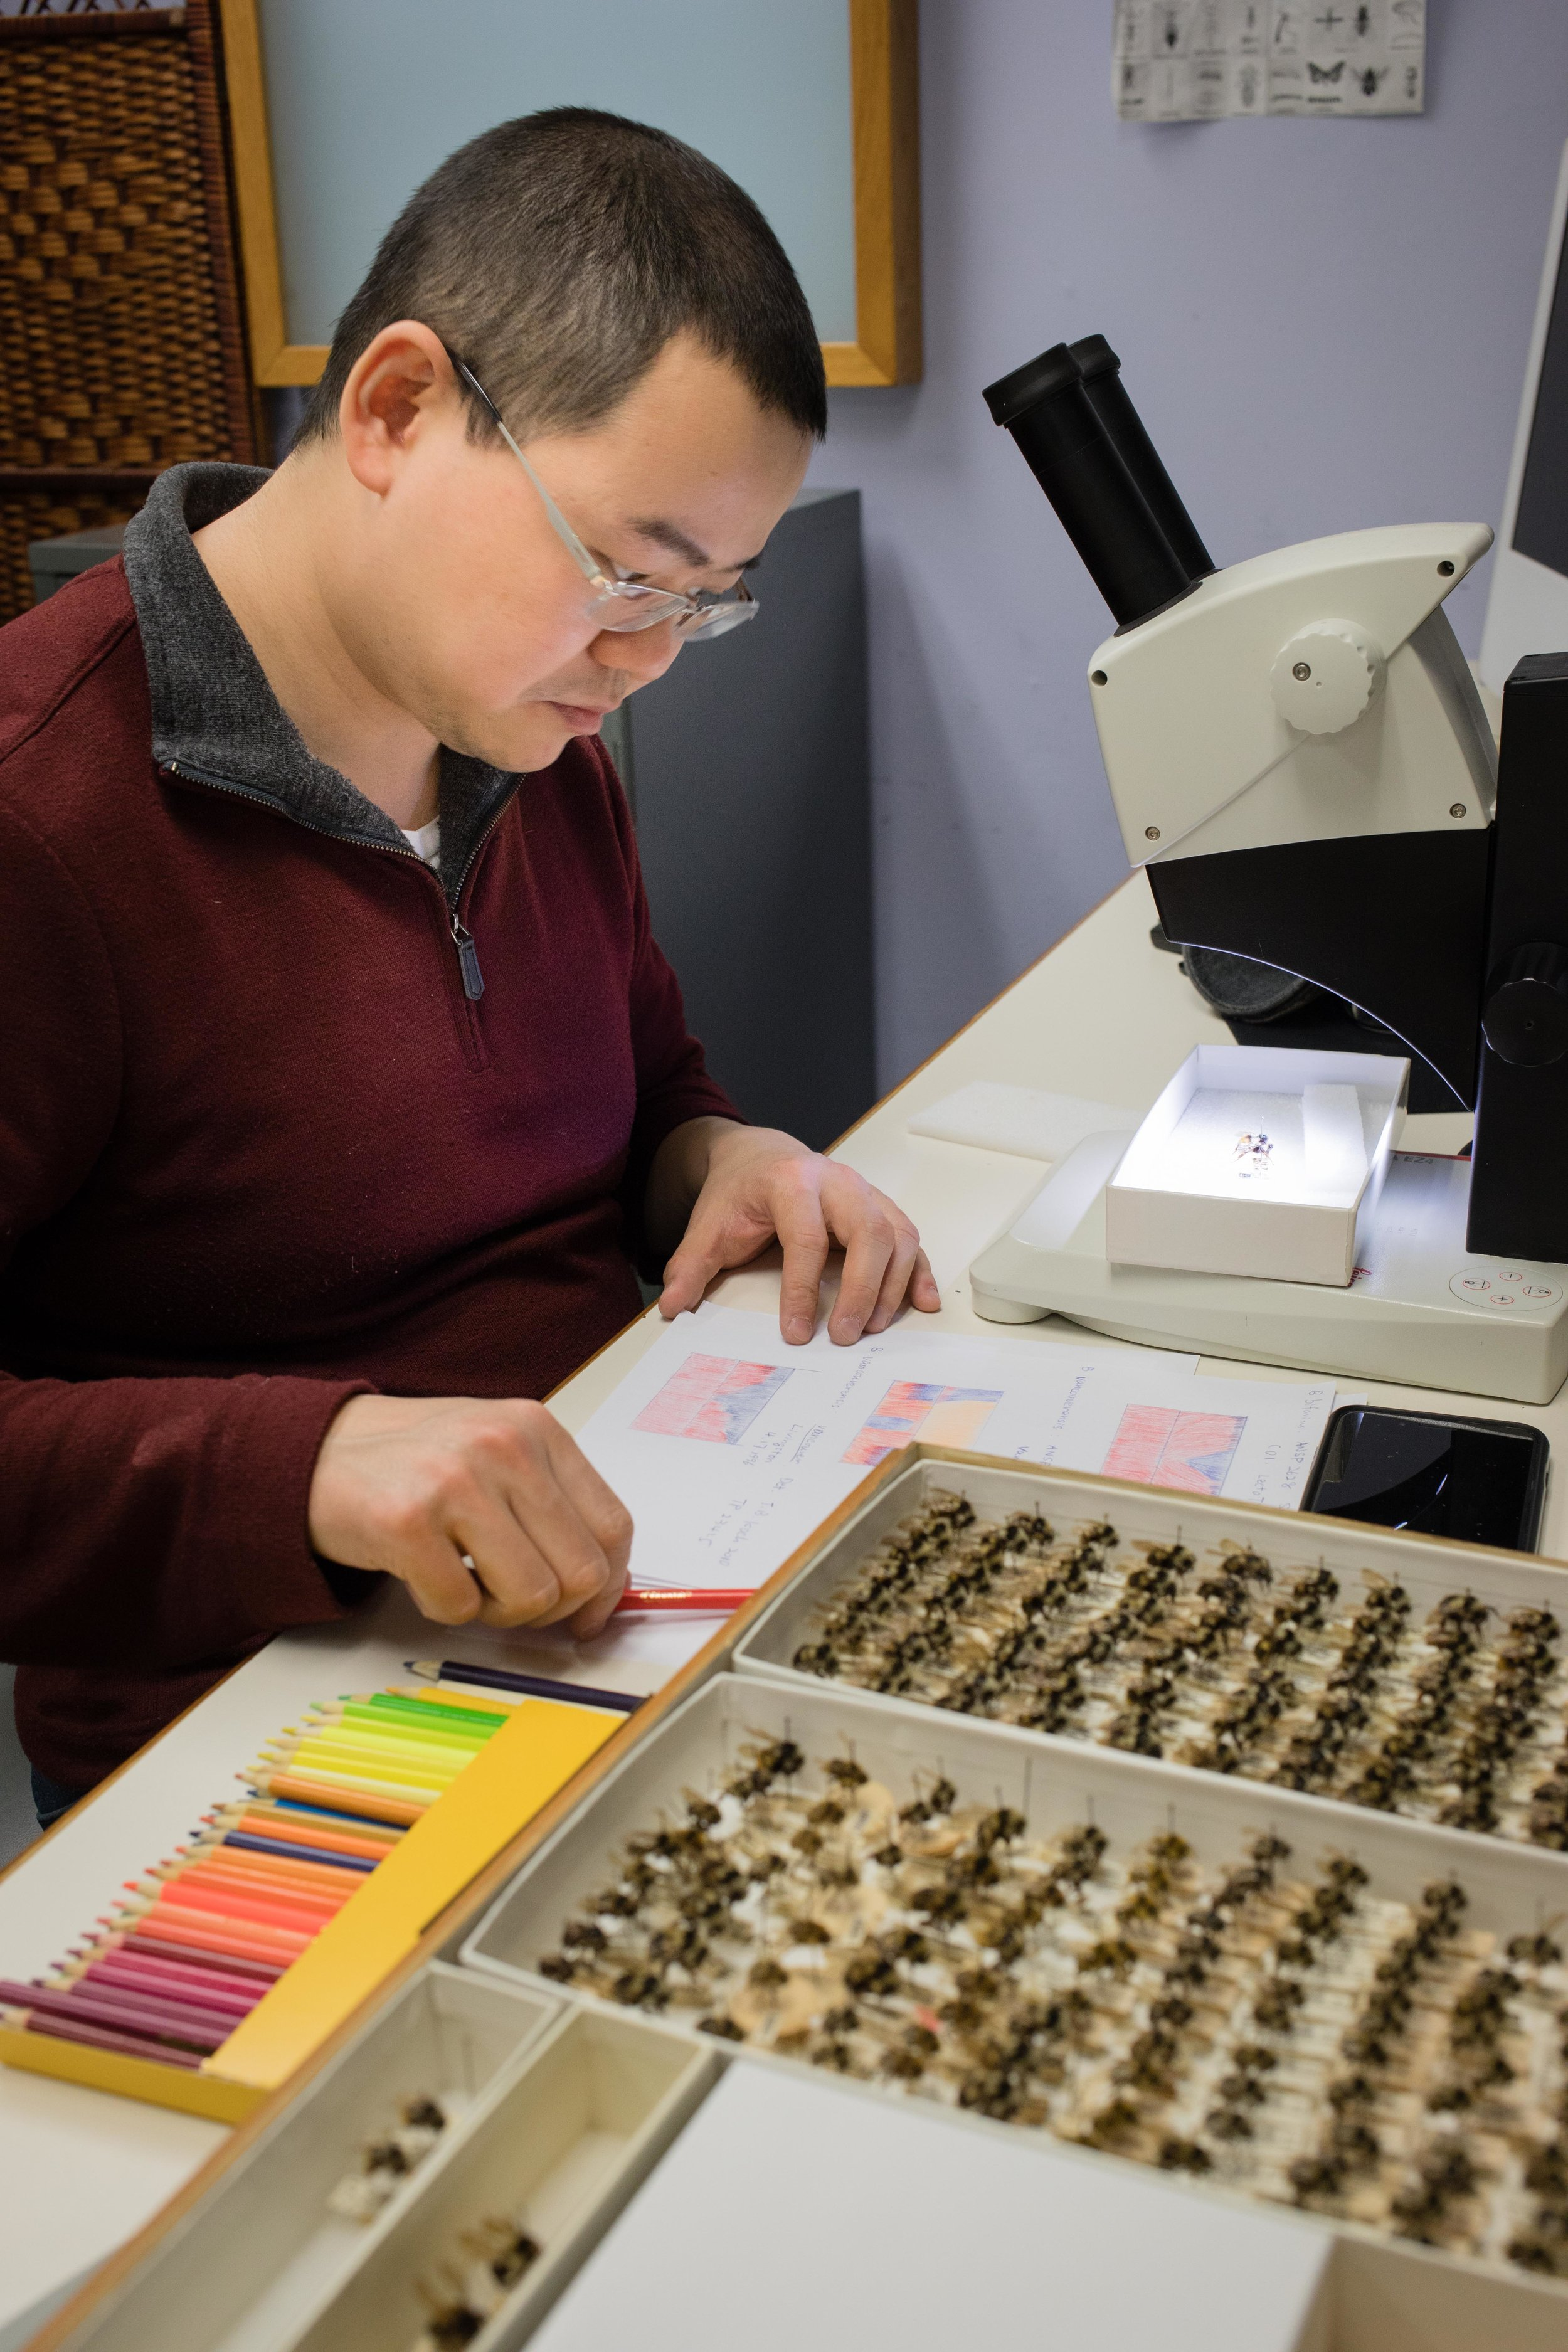 A visiting post-doc researcher from Pennsylvania State University, Dr. Li Tian visit the Academy of Natural Sciences of Drexel University's Entomology Collection for a day to study specimens in the collection. He records the abdominal patterns of several different bumblebee species.